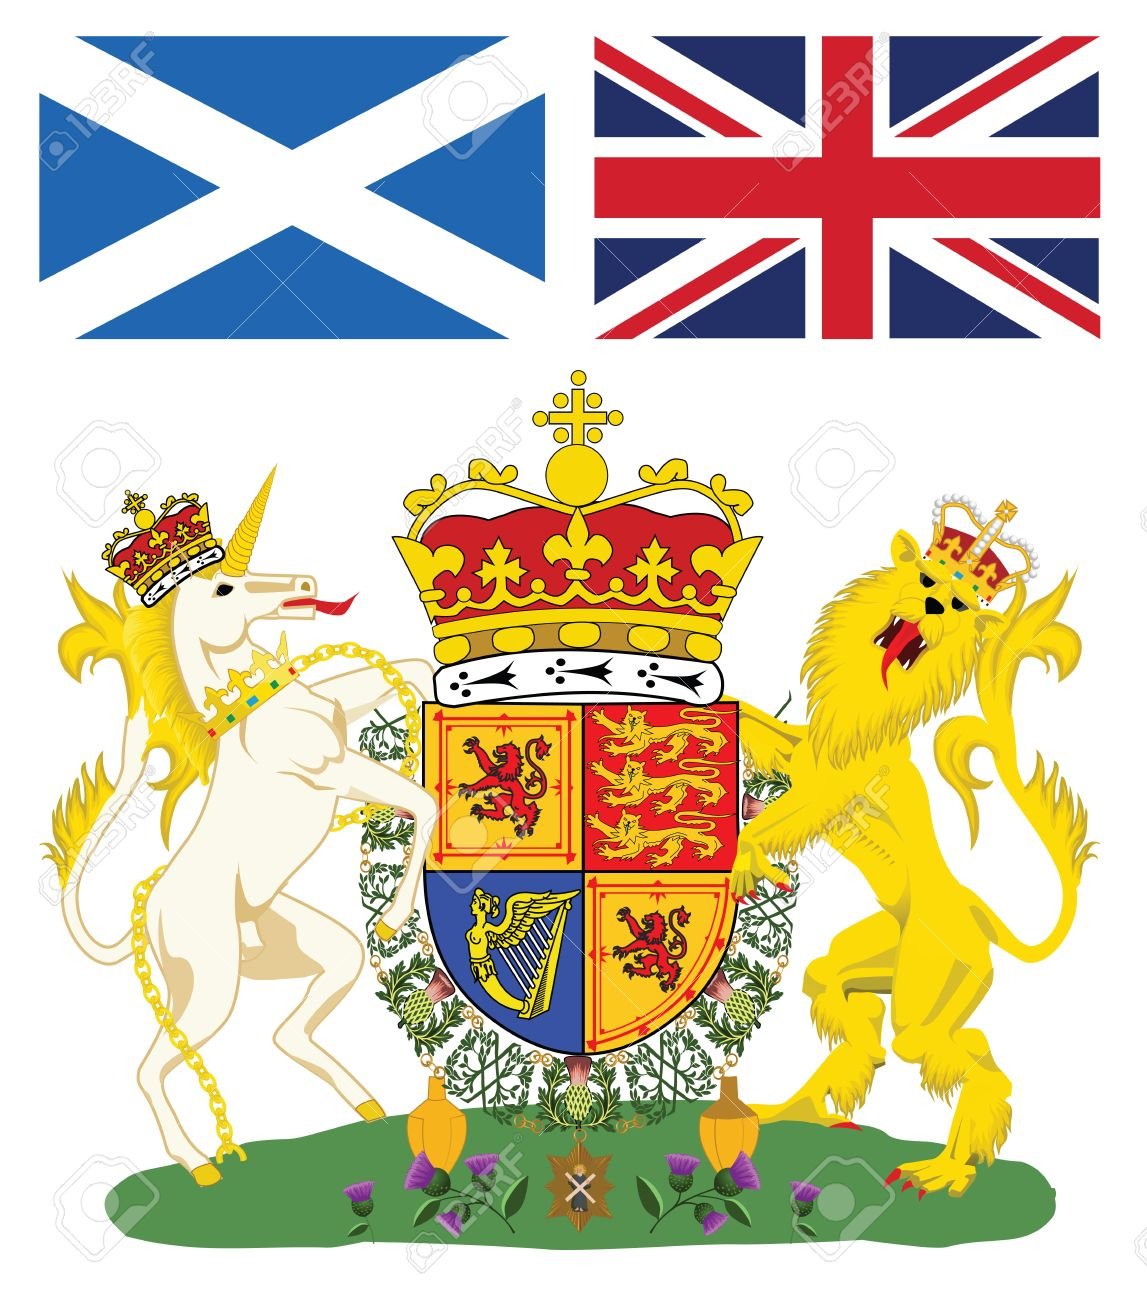 Scottish Royal Coat Of Arms With Flags Of Scotland And Great.